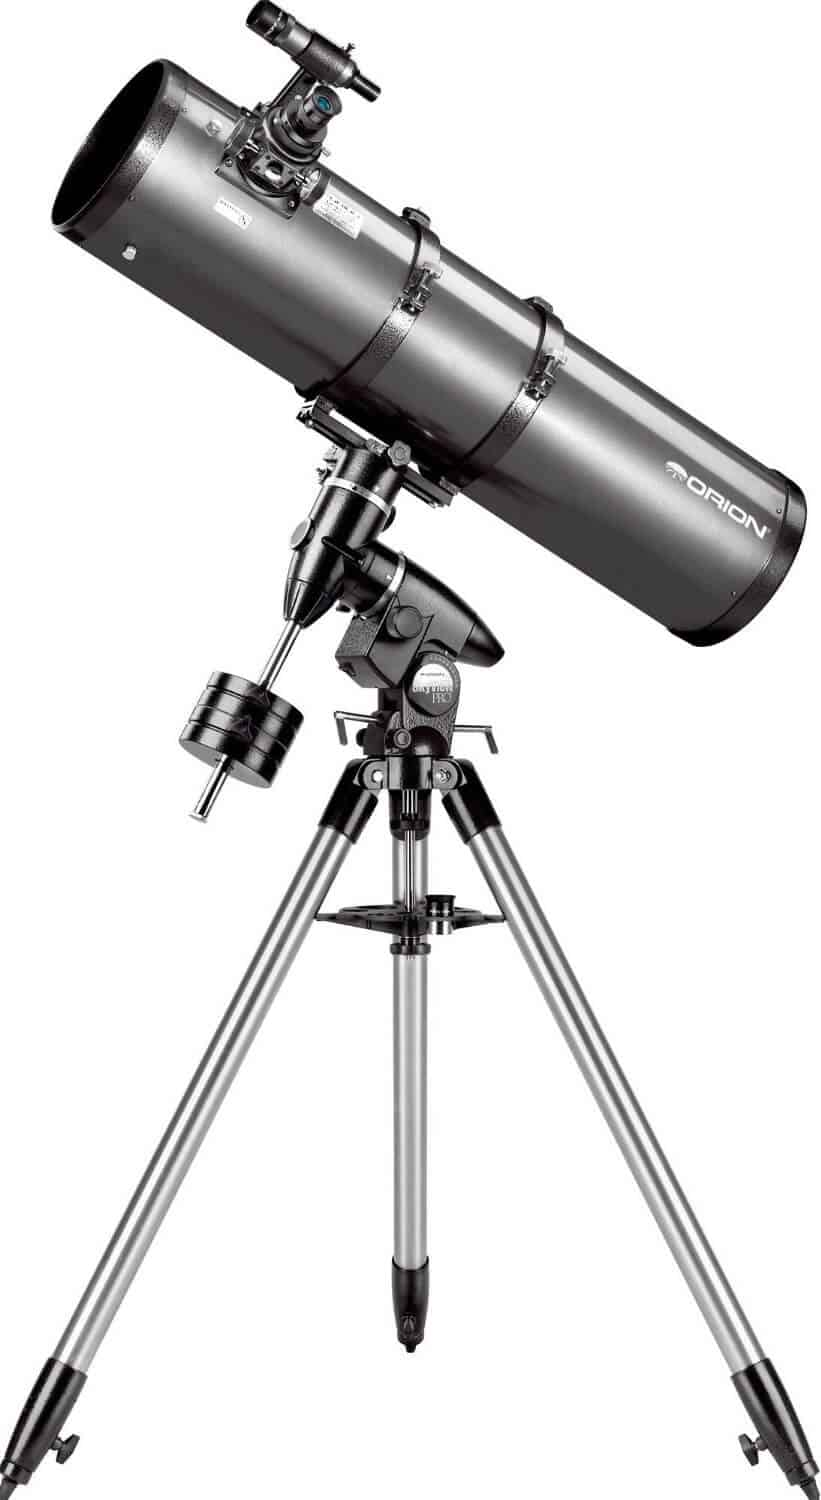 Best newtonian telescope between $500 and $1000 orion 9738 skyview pro 8inch